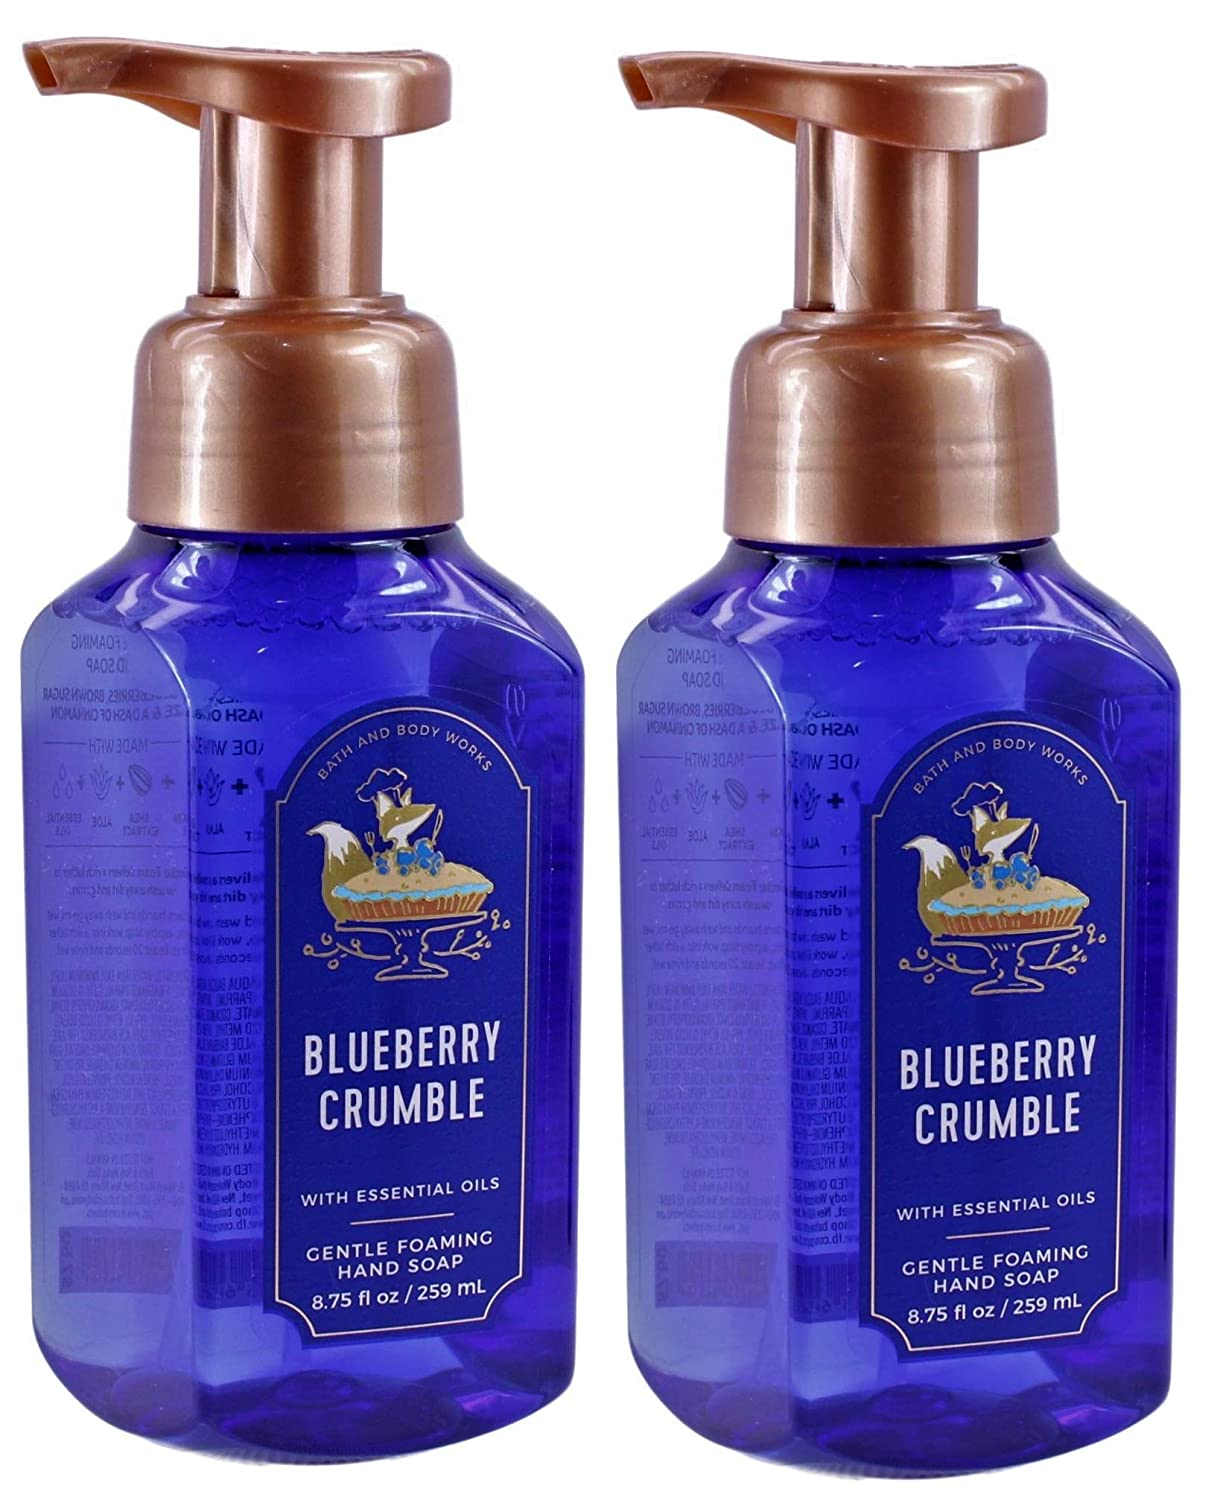 White Barn Bath and Body Works Blueberry Crumble 8.75 ounce (2 Pack) Gentle Foaming Hand Soap